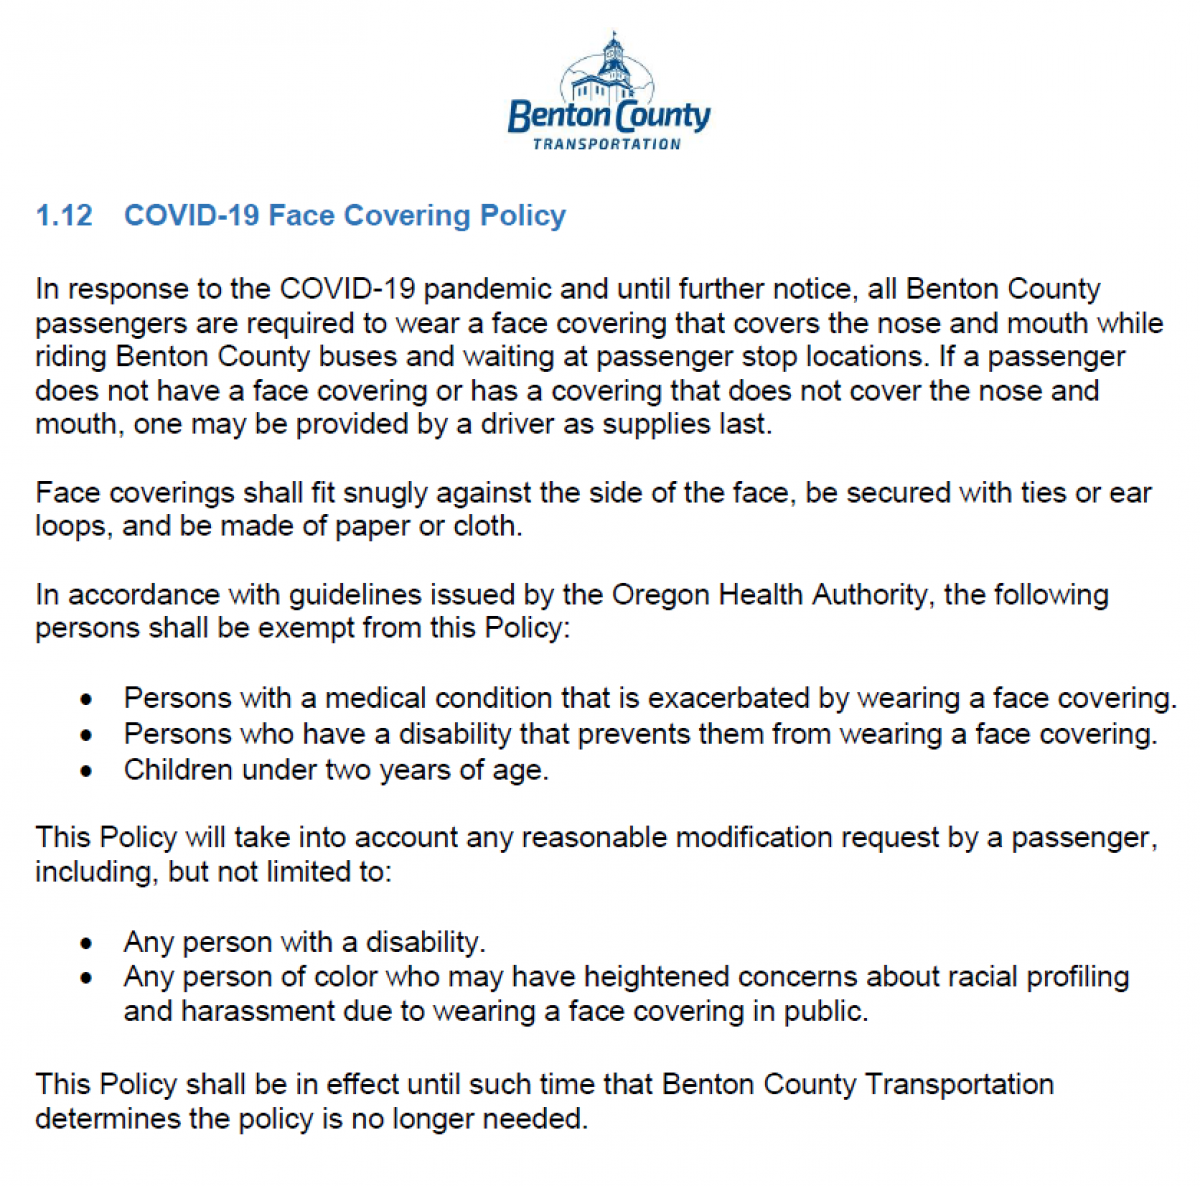 Benton County Transportation Face Covering Policy